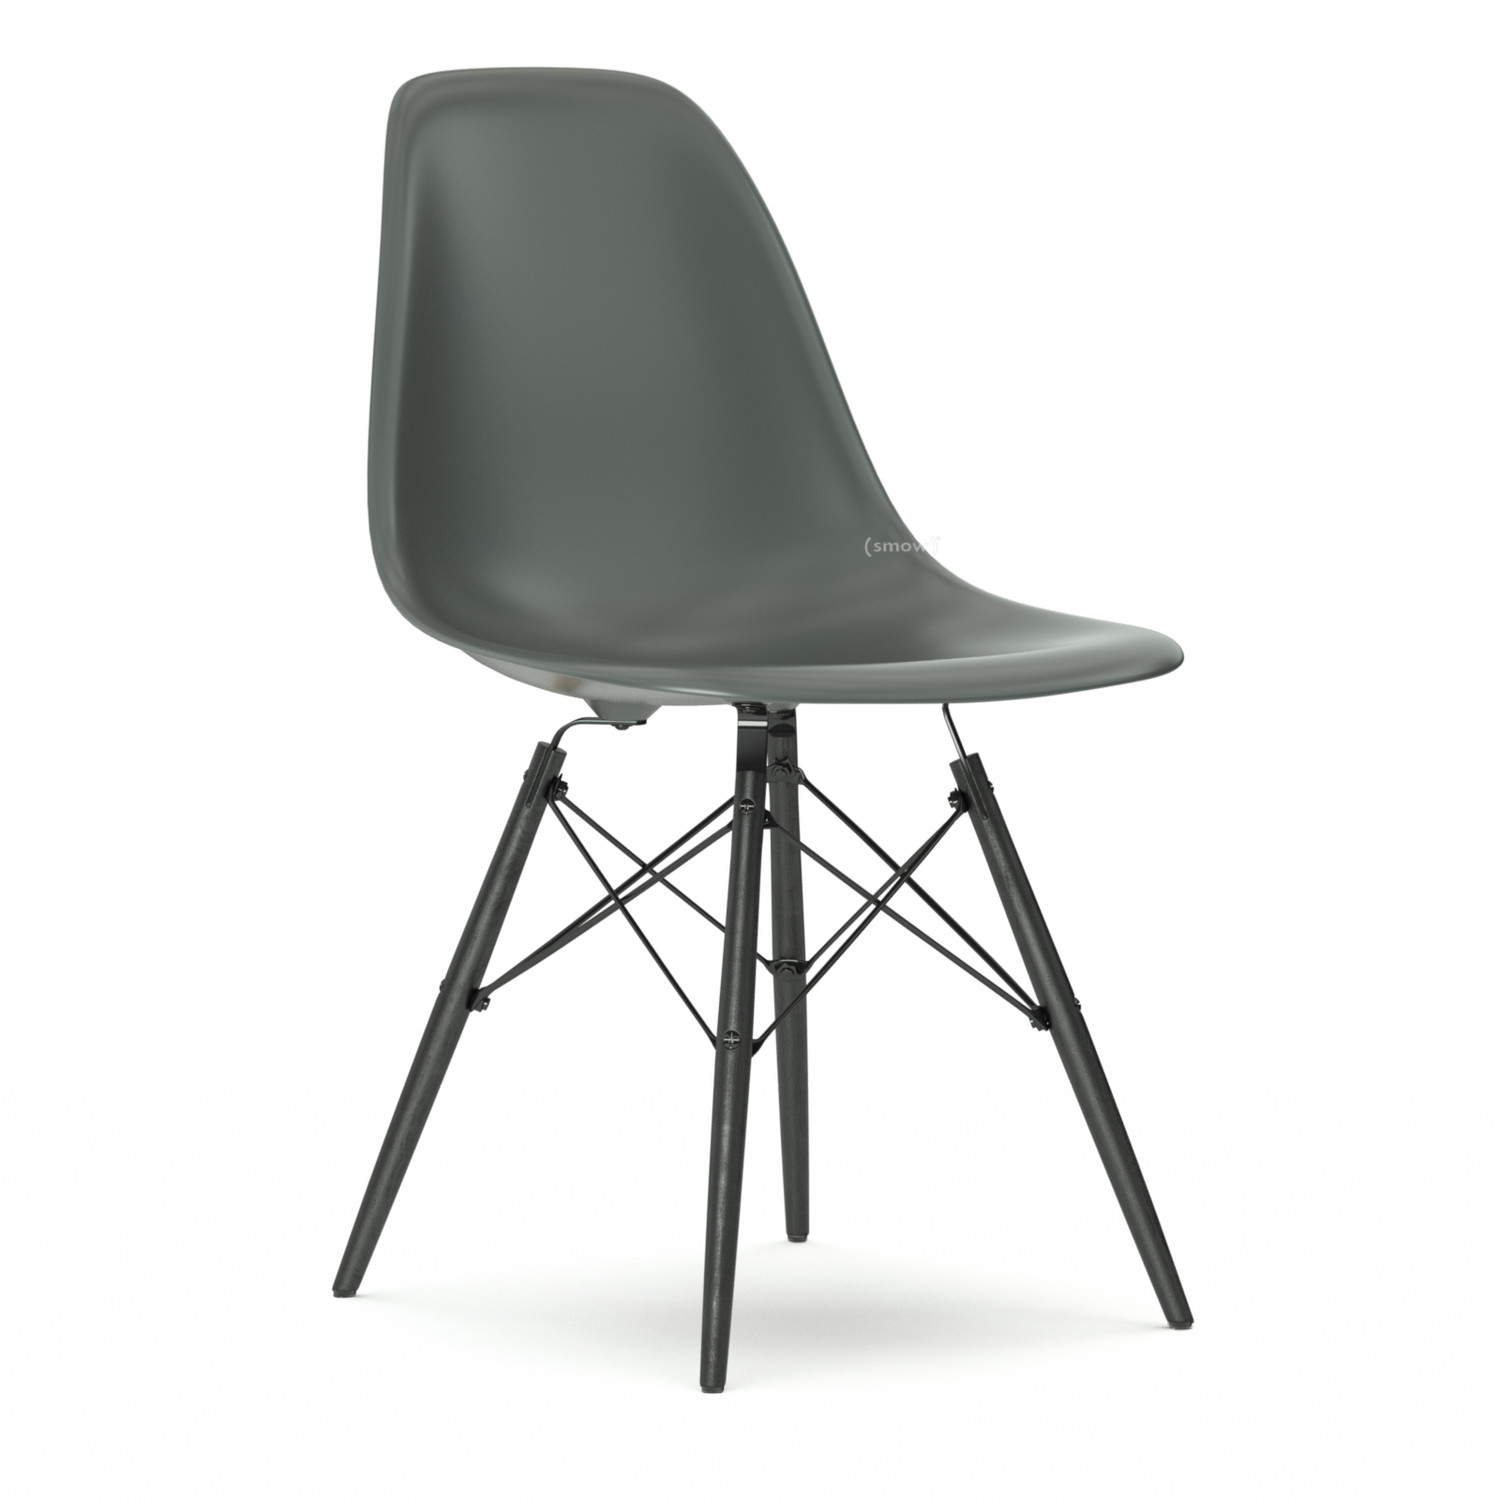 vitra eames plastic side chair dsw moss grey without. Black Bedroom Furniture Sets. Home Design Ideas